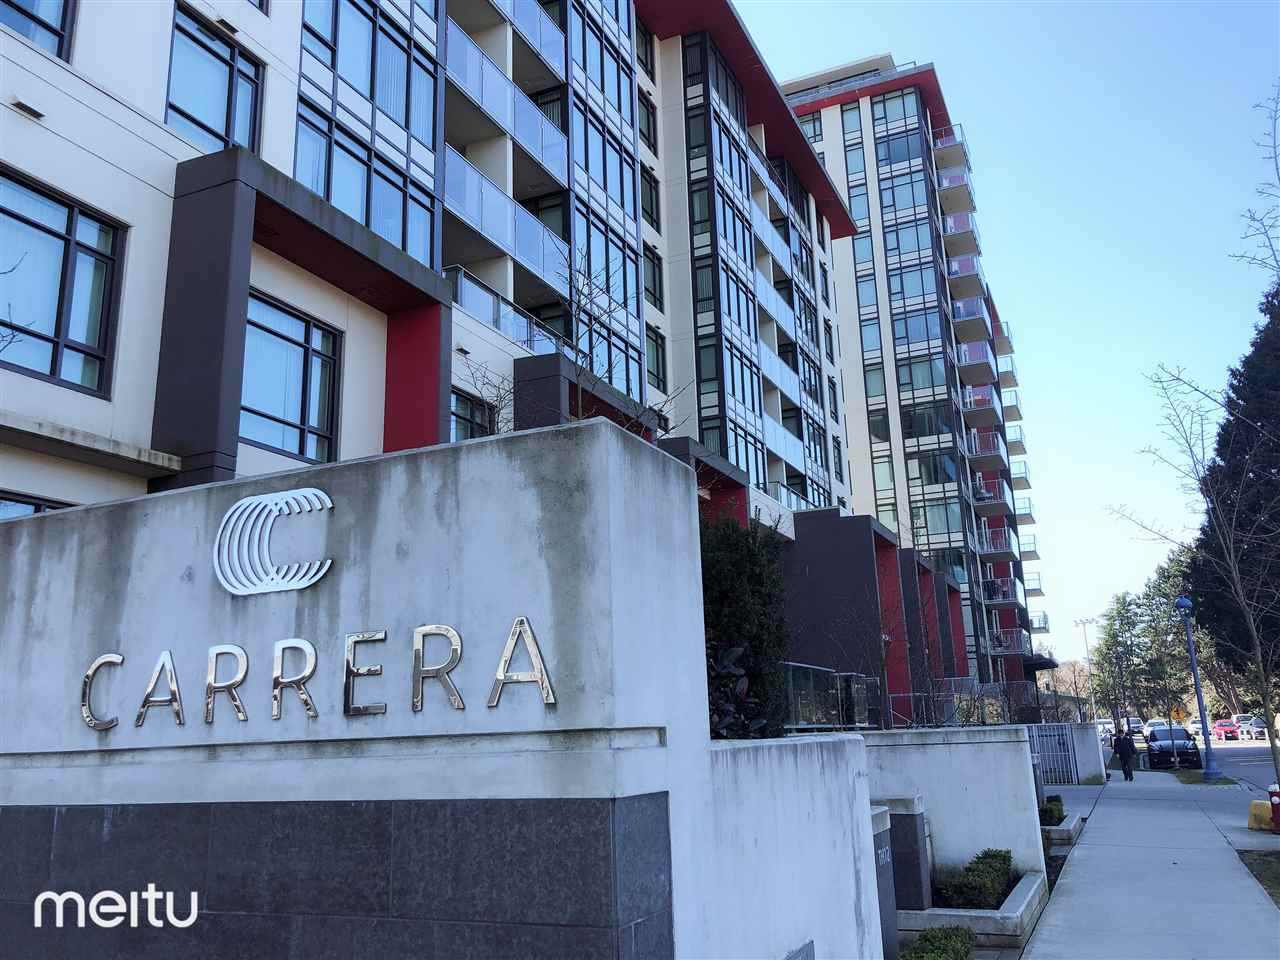 Main Photo: 603 7328 Gollner Av in Richmond: Brighouse Condo for sale : MLS®# R2343030